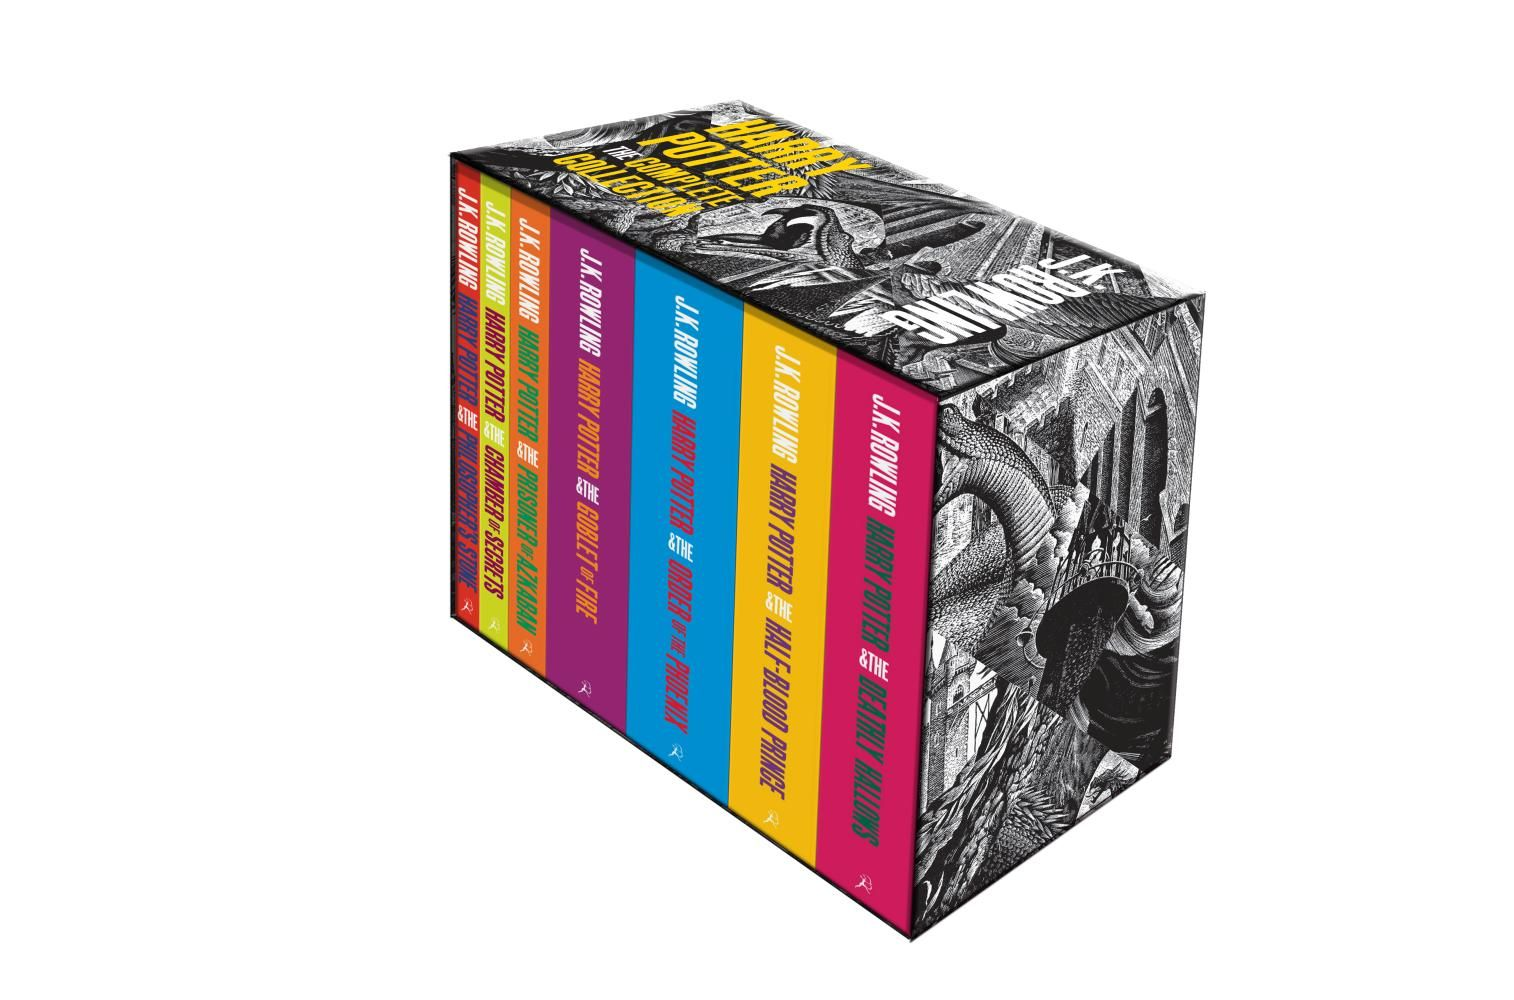 Harry potter complete paperback box set adult editions